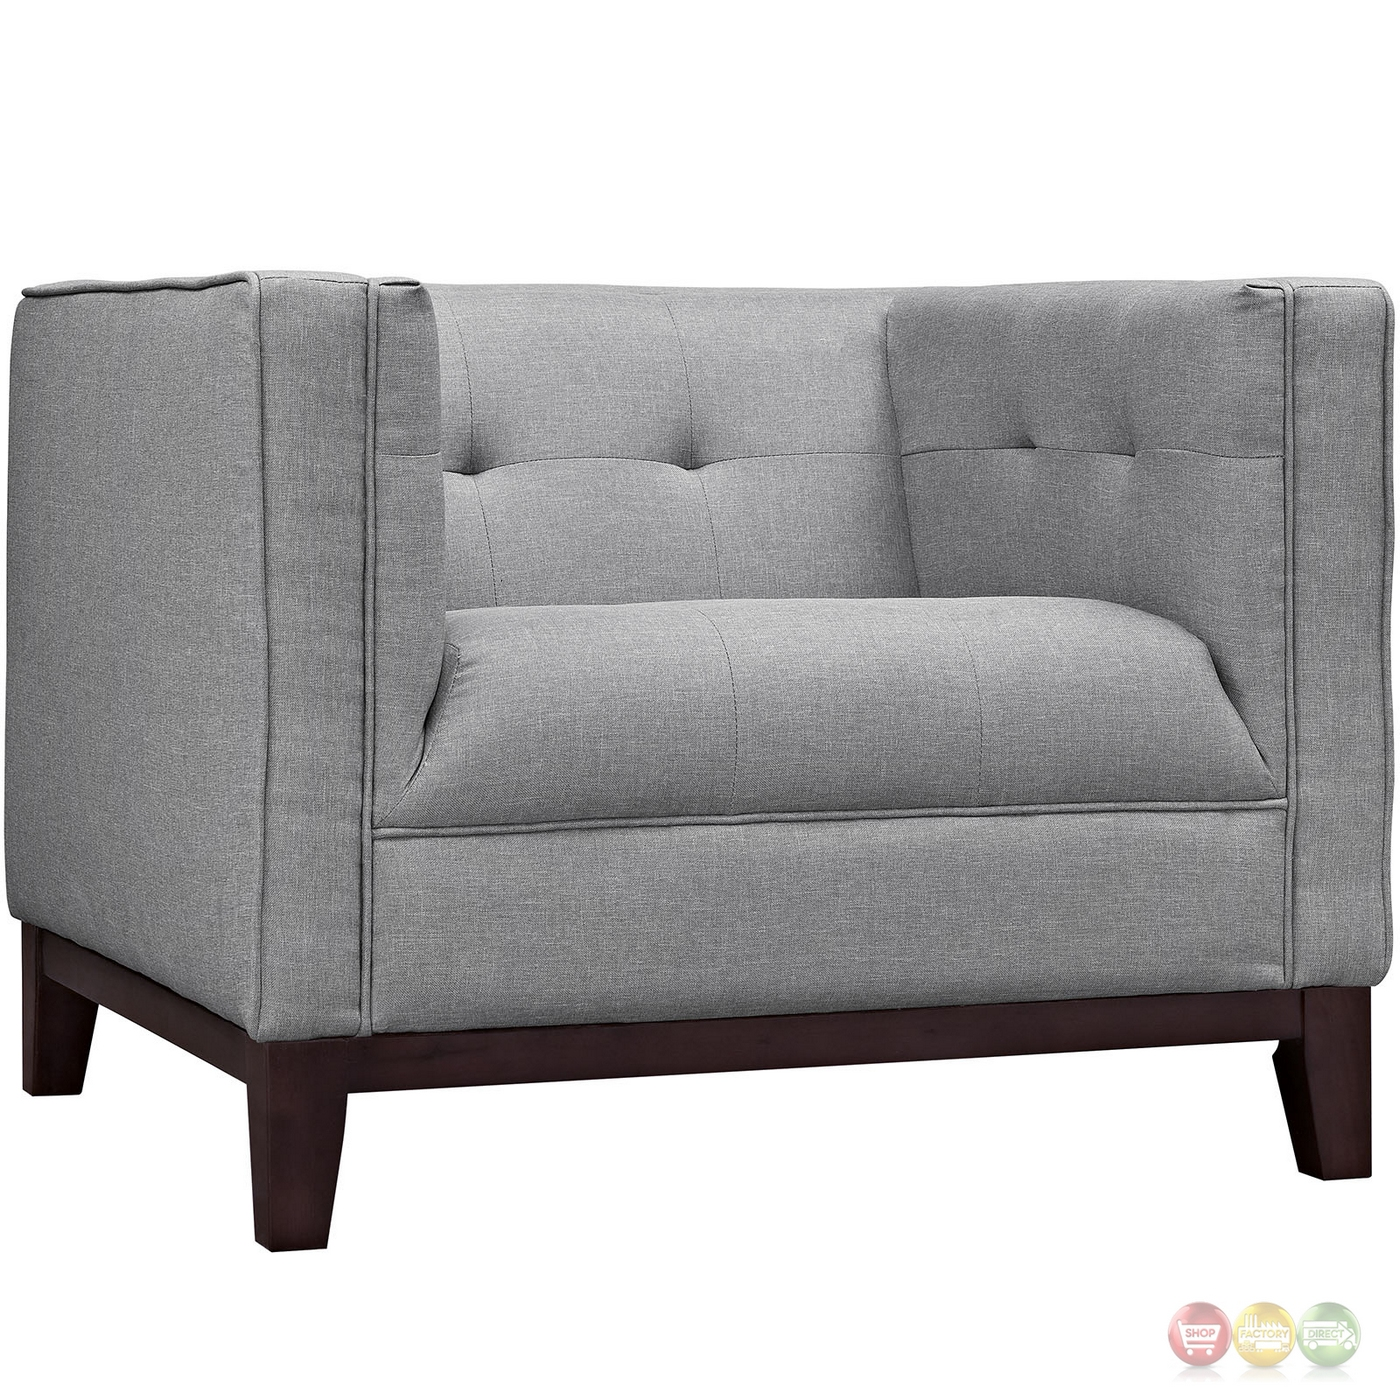 Mid century modern serve 3 pc sofa armchairs living room for Modern armchairs for living room